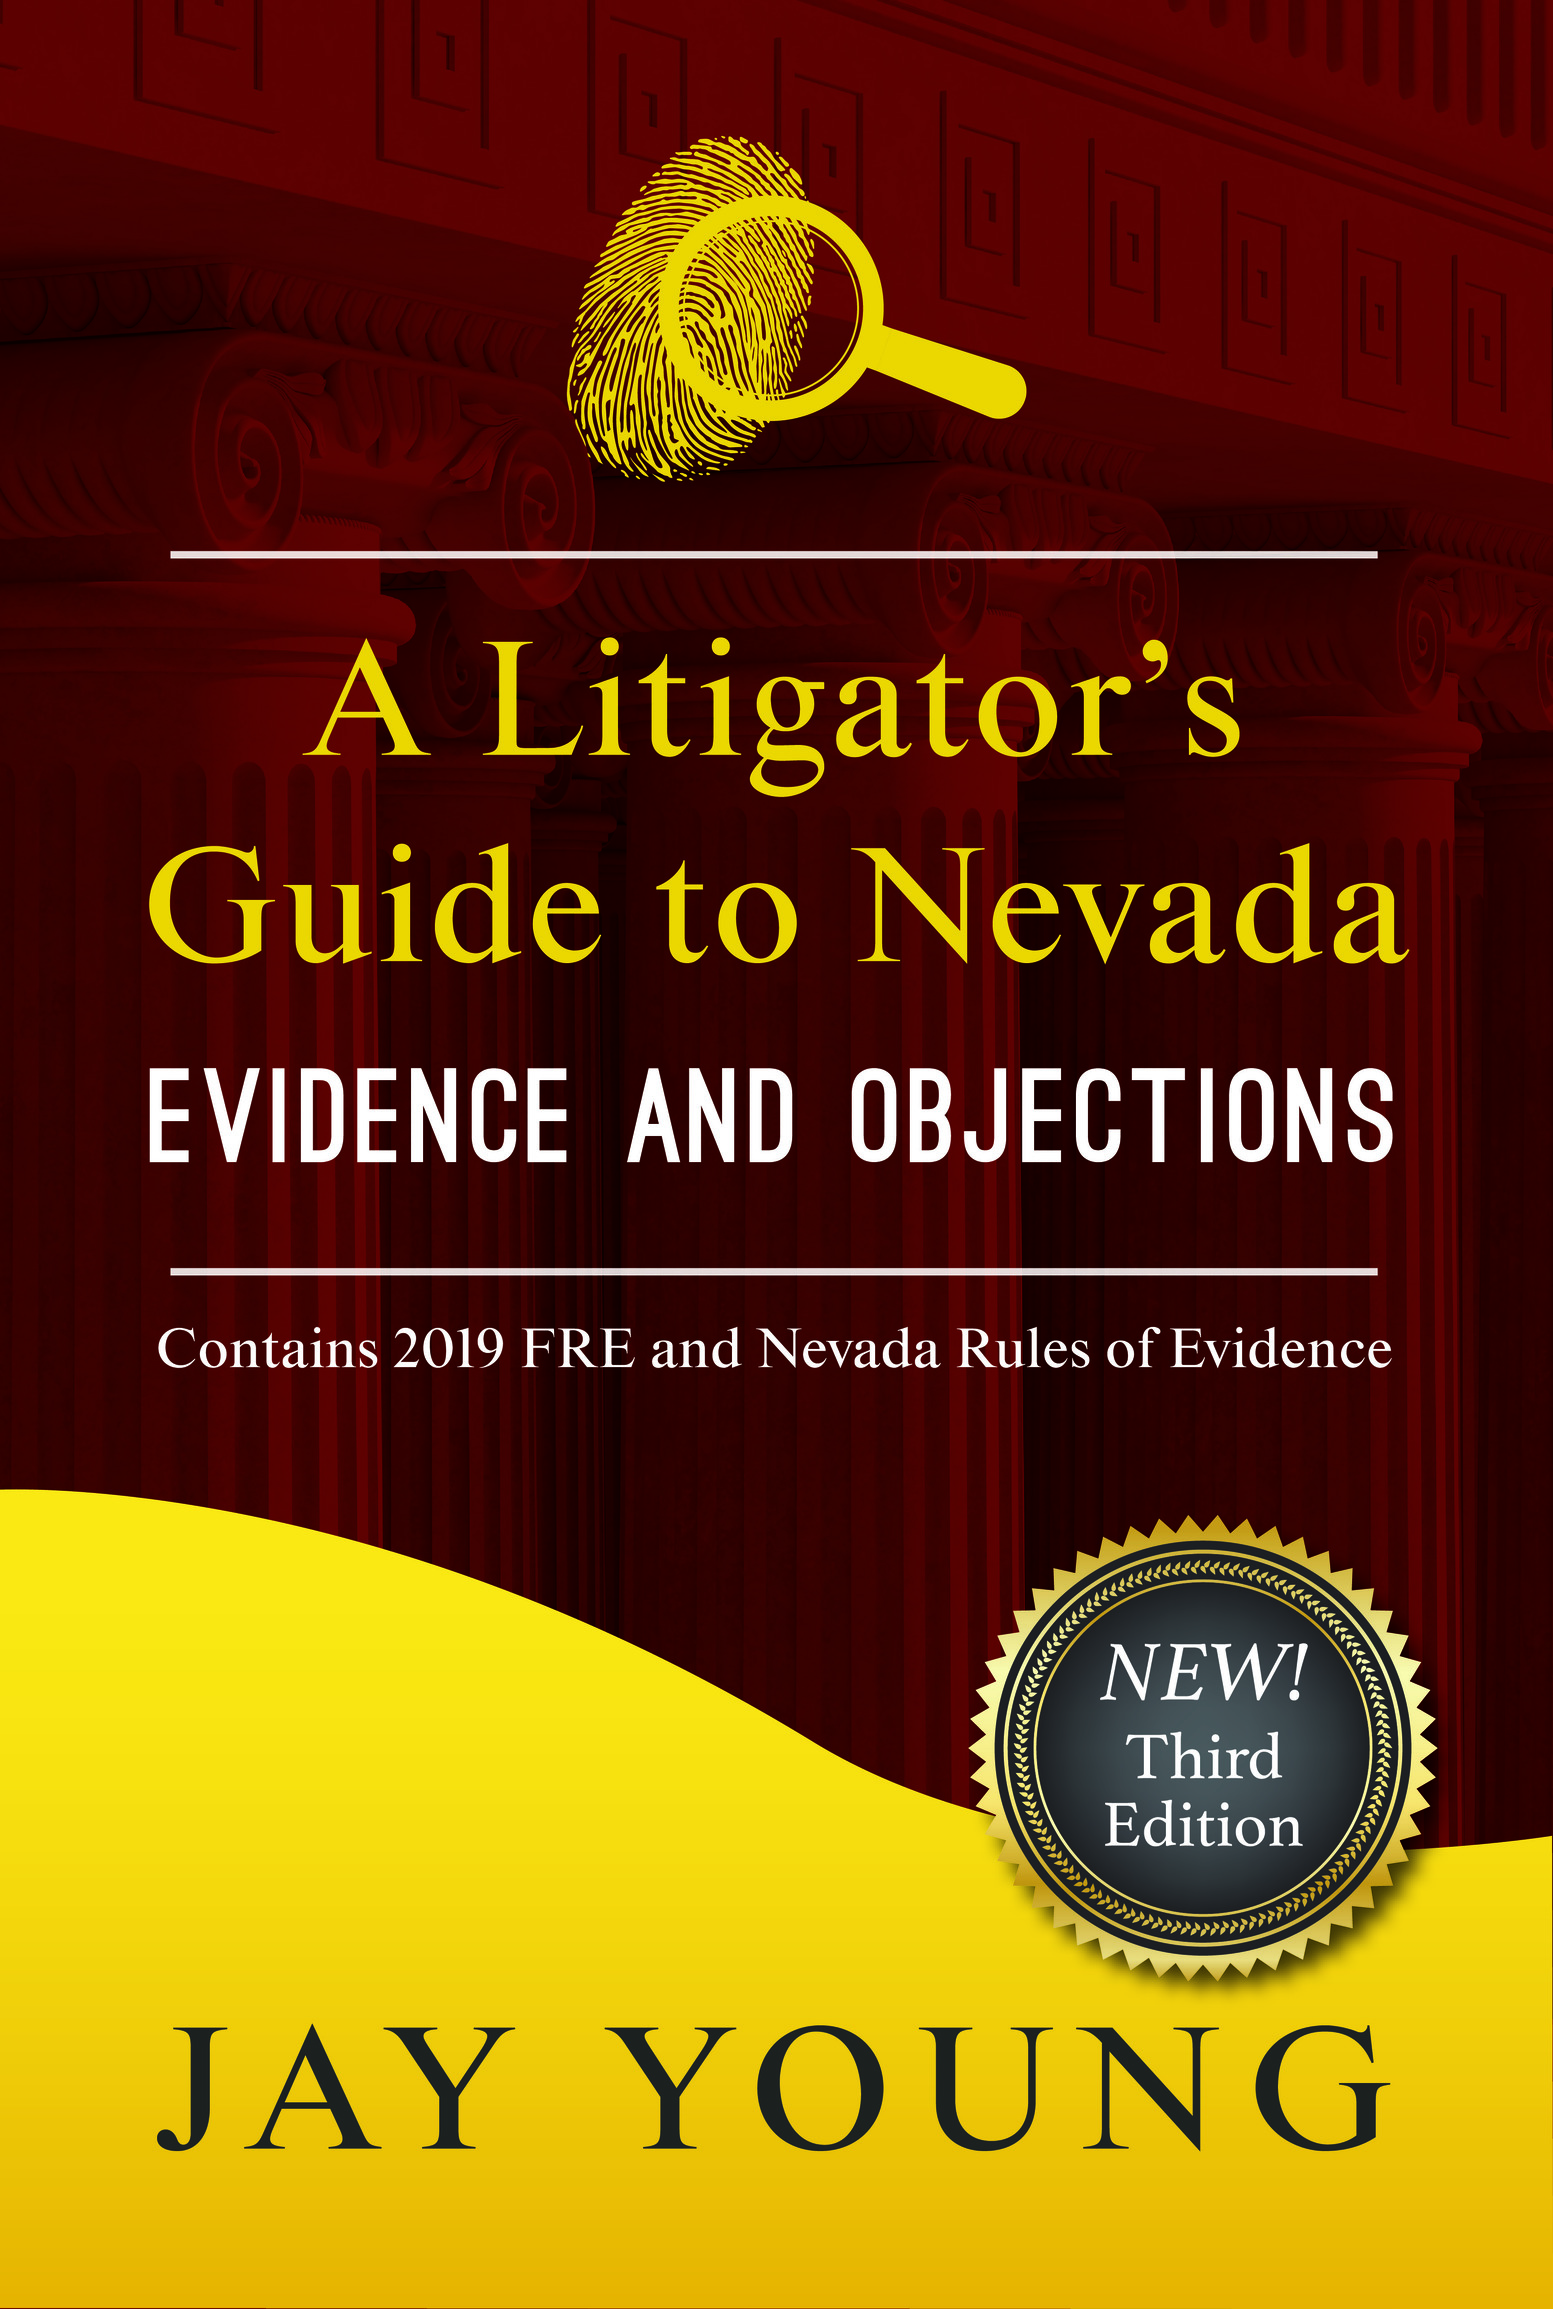 A Litigator's Guide to Nevada Evidence and Objections by Jay Young